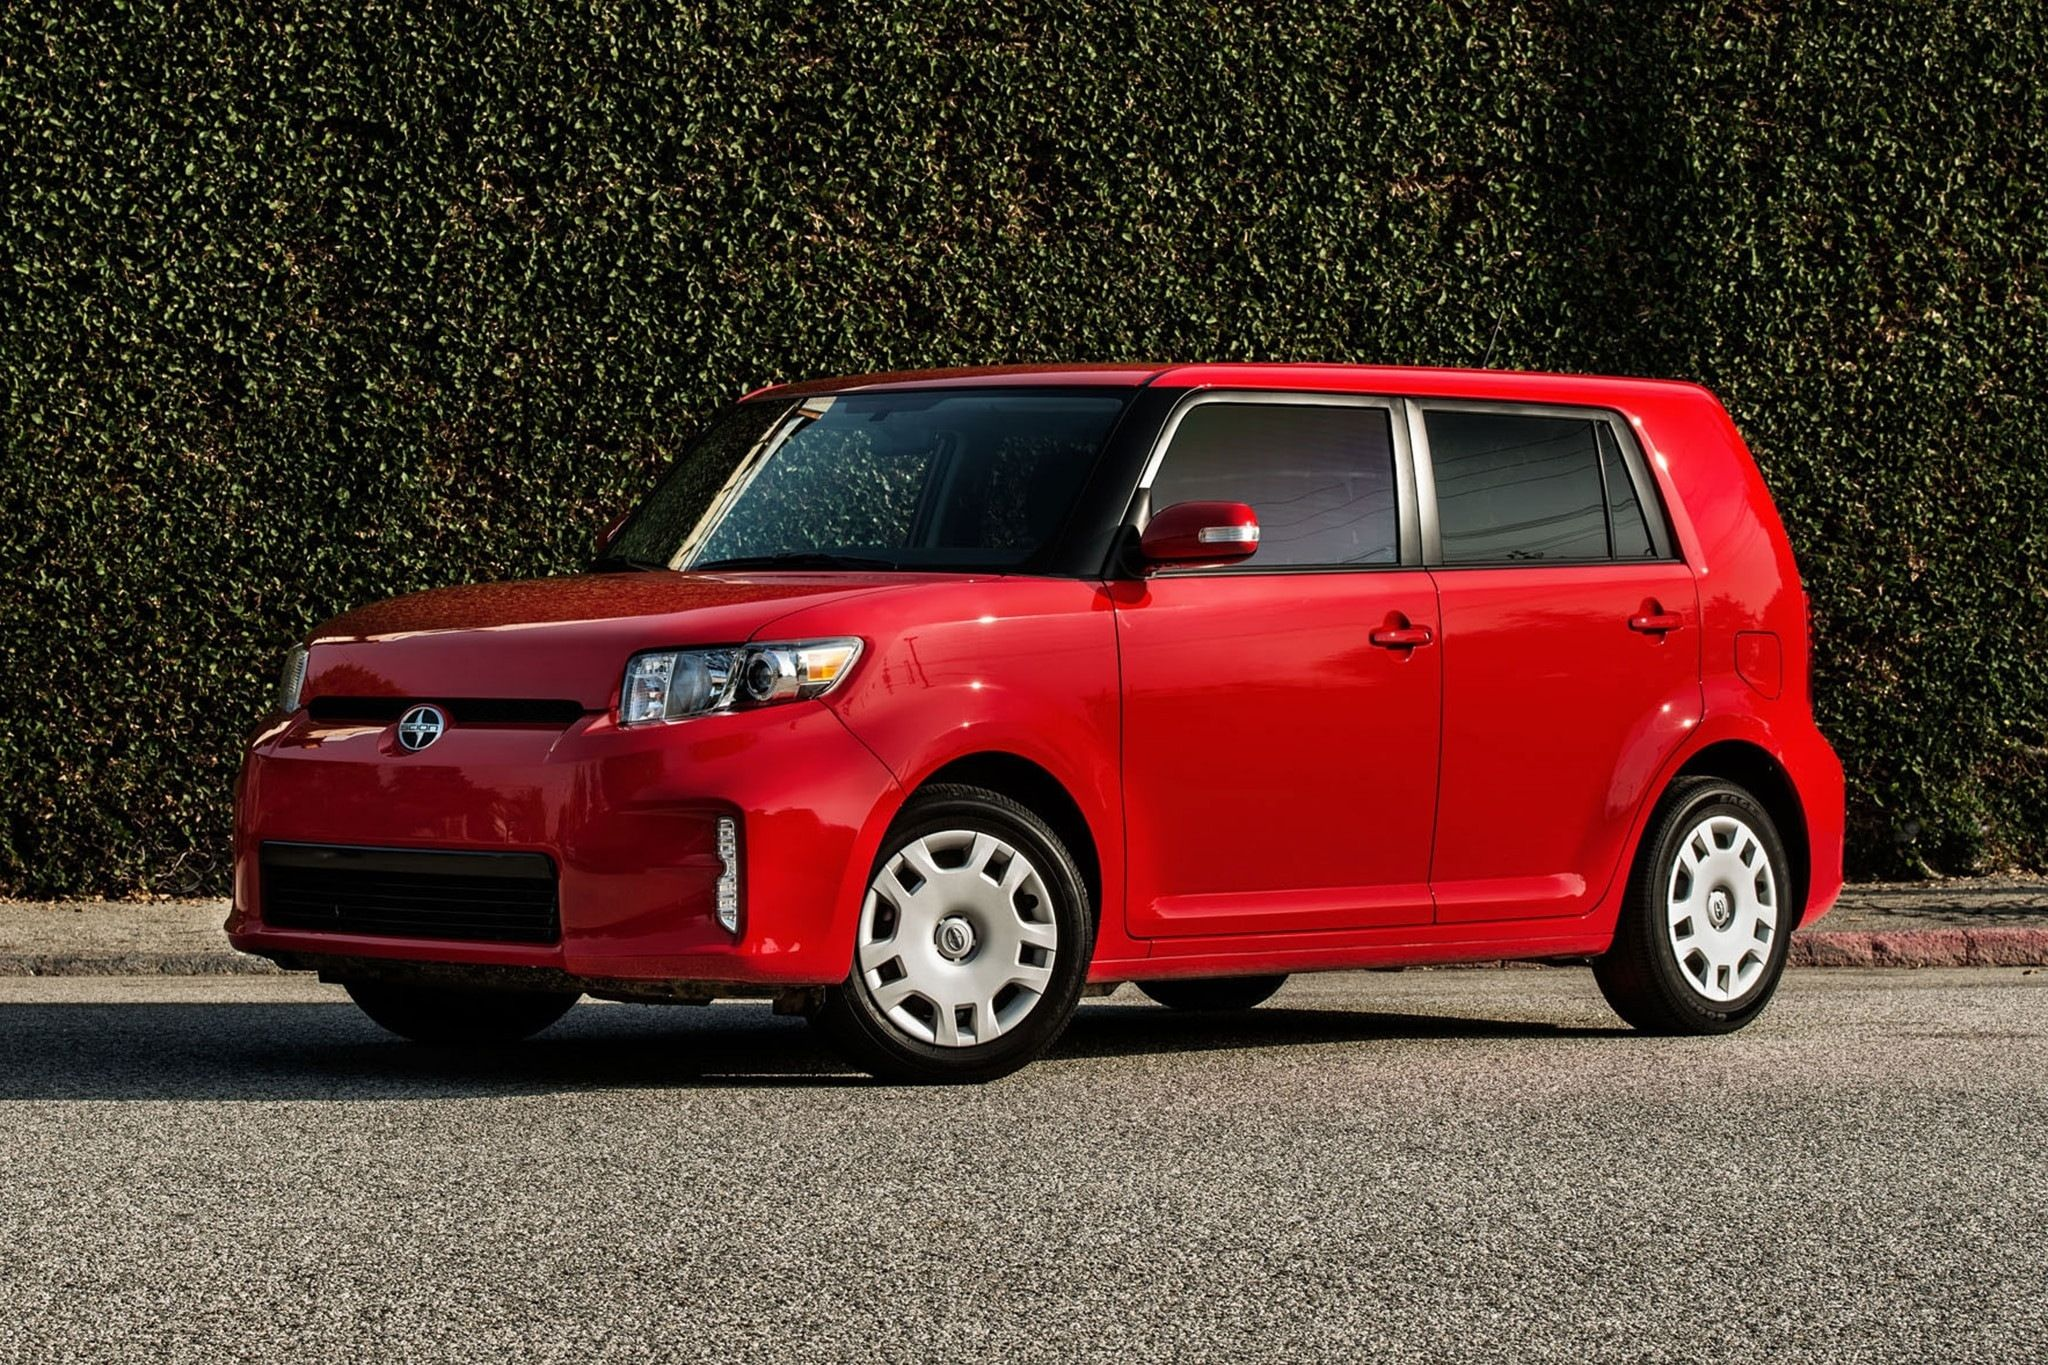 2020 Scion XB Model